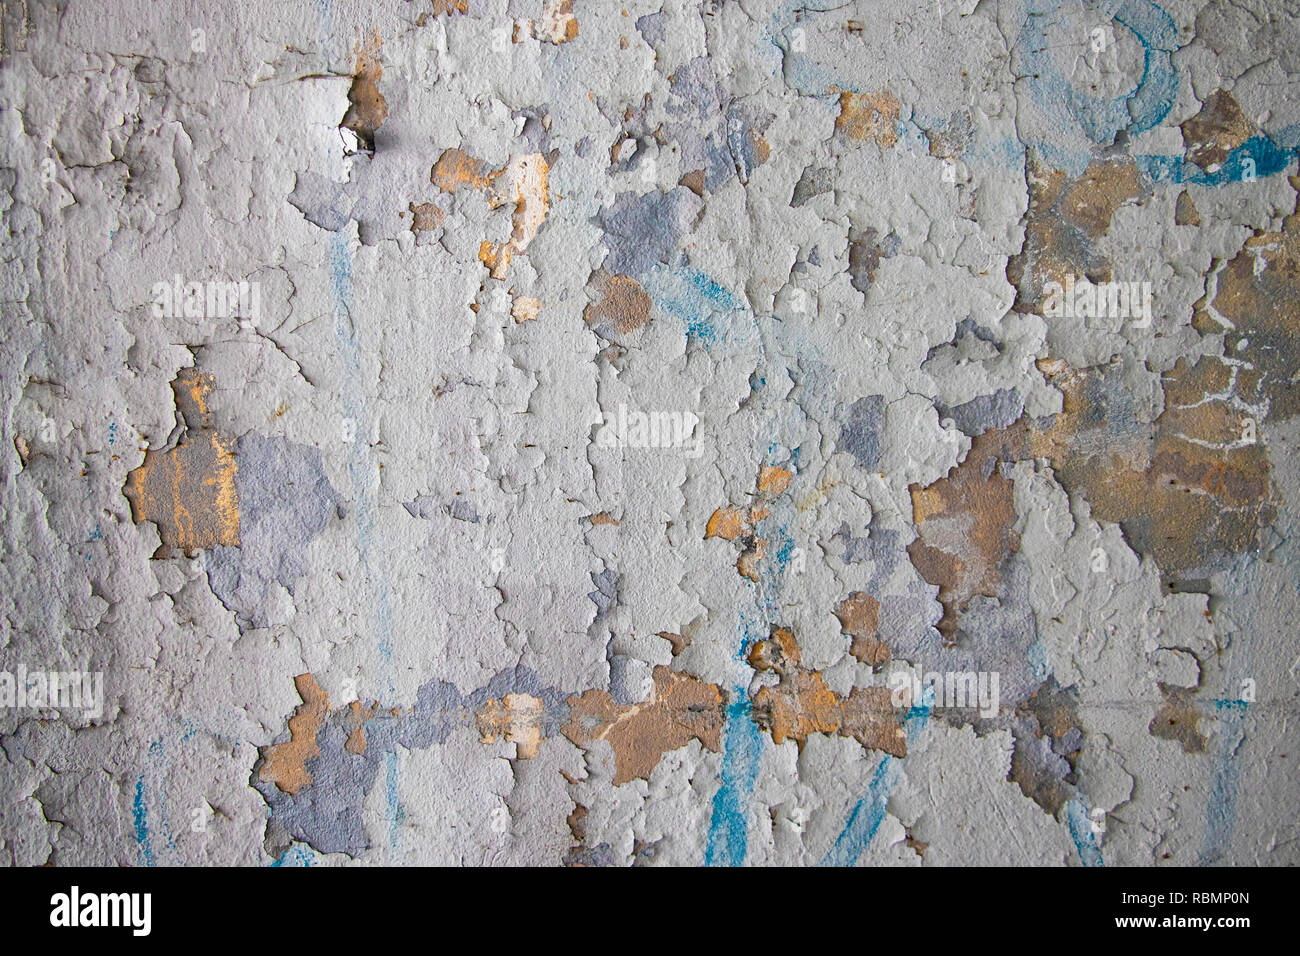 Decrepit White Dirty Plaster Wall With Cracked Structure Horizontal Empty Grunge Background. Old Gray Grey Mortar Wall With Rough Shabby Stucco Layer  - Stock Image